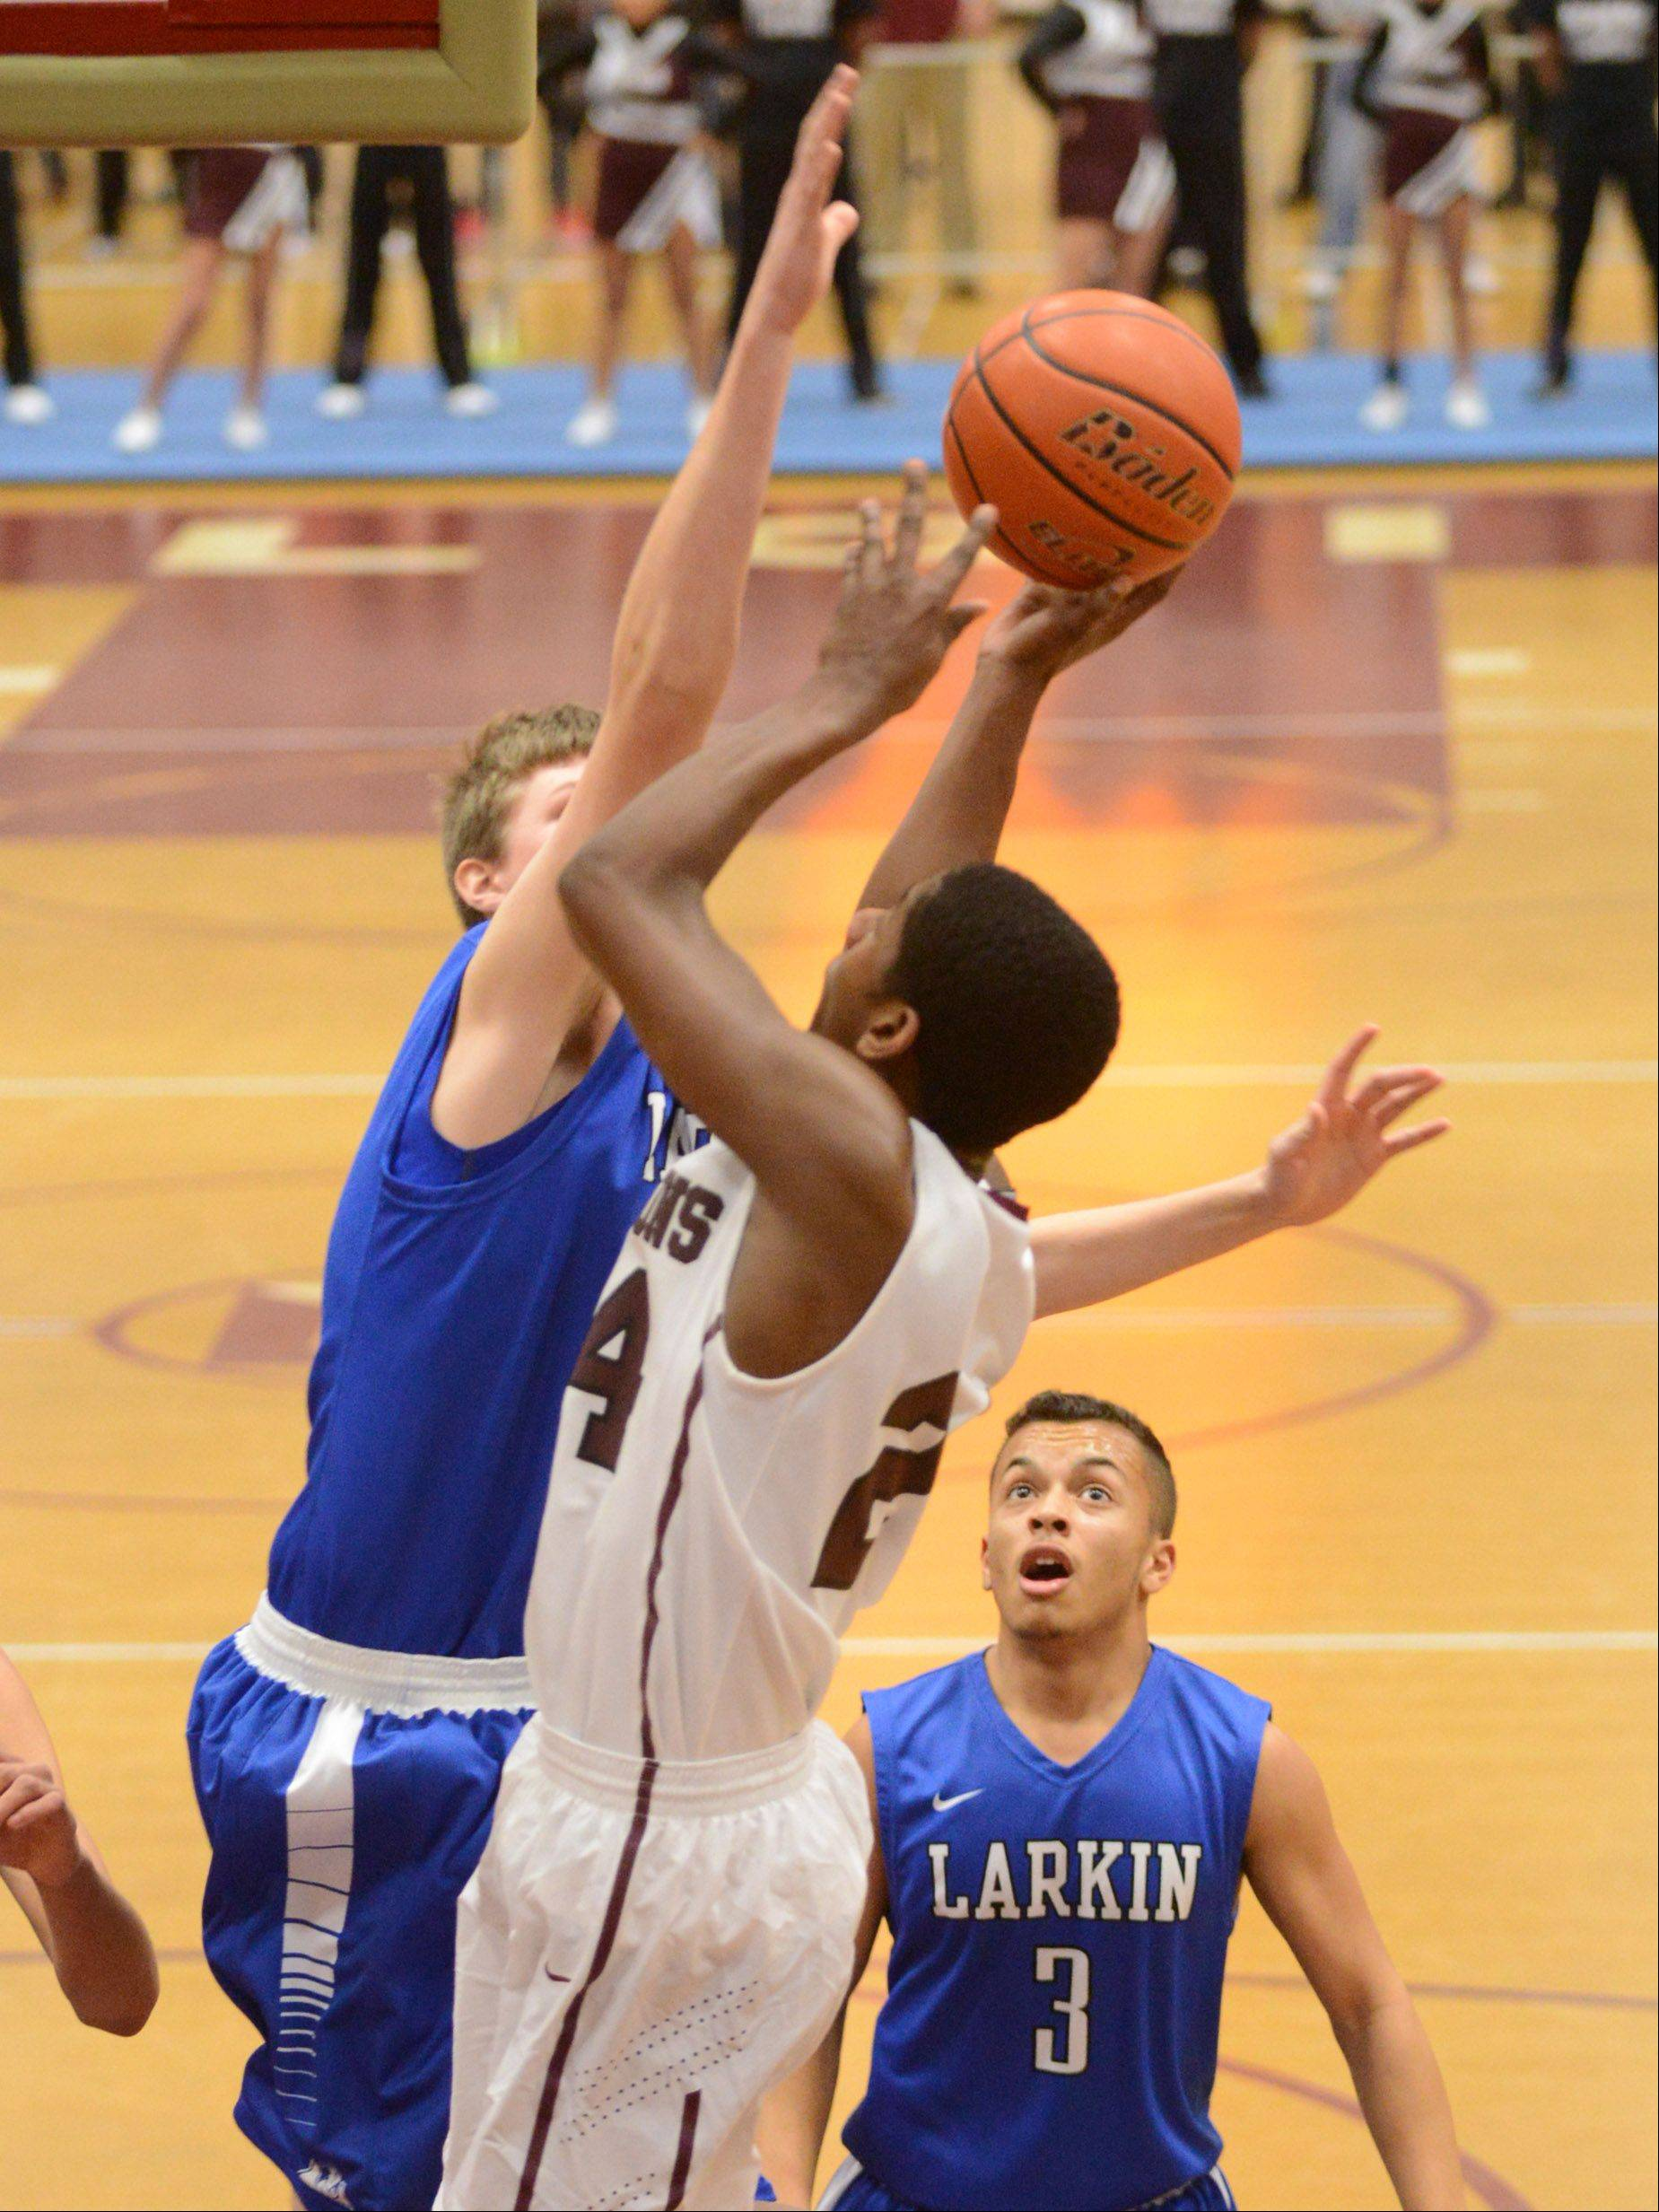 Images from the Elgin vs. Larkin boys basketball game Thursday, December 19, 2013.